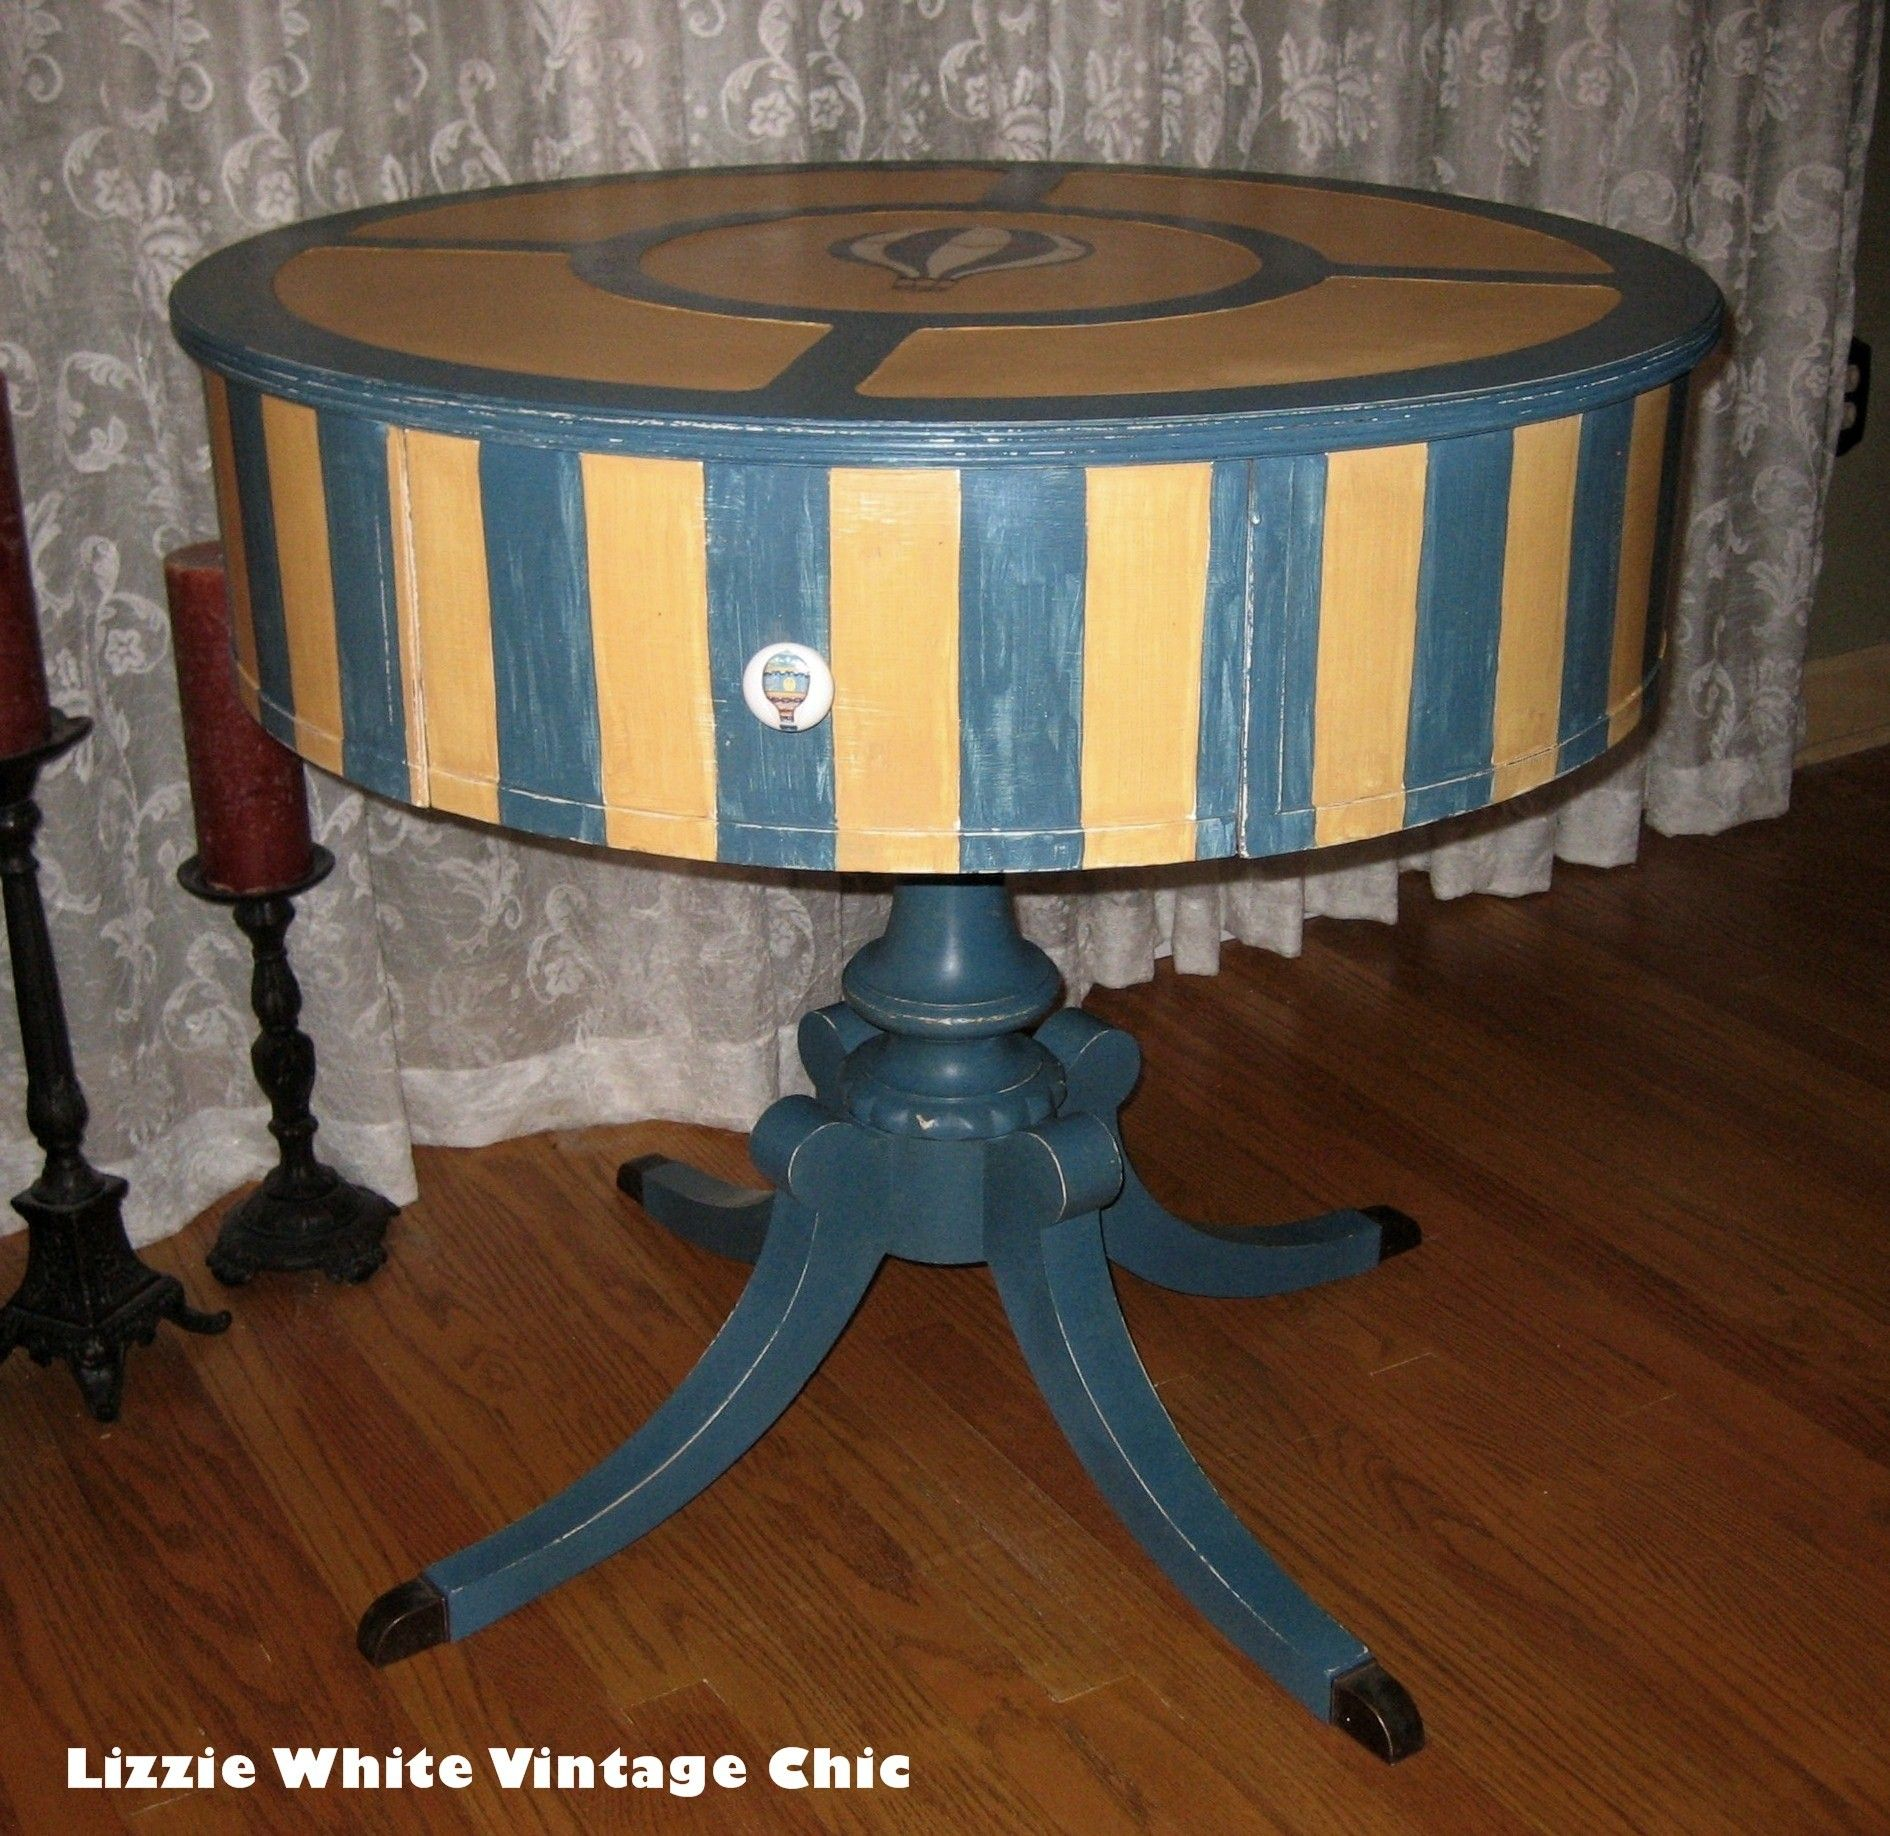 Vintage Drum Table given a whole new